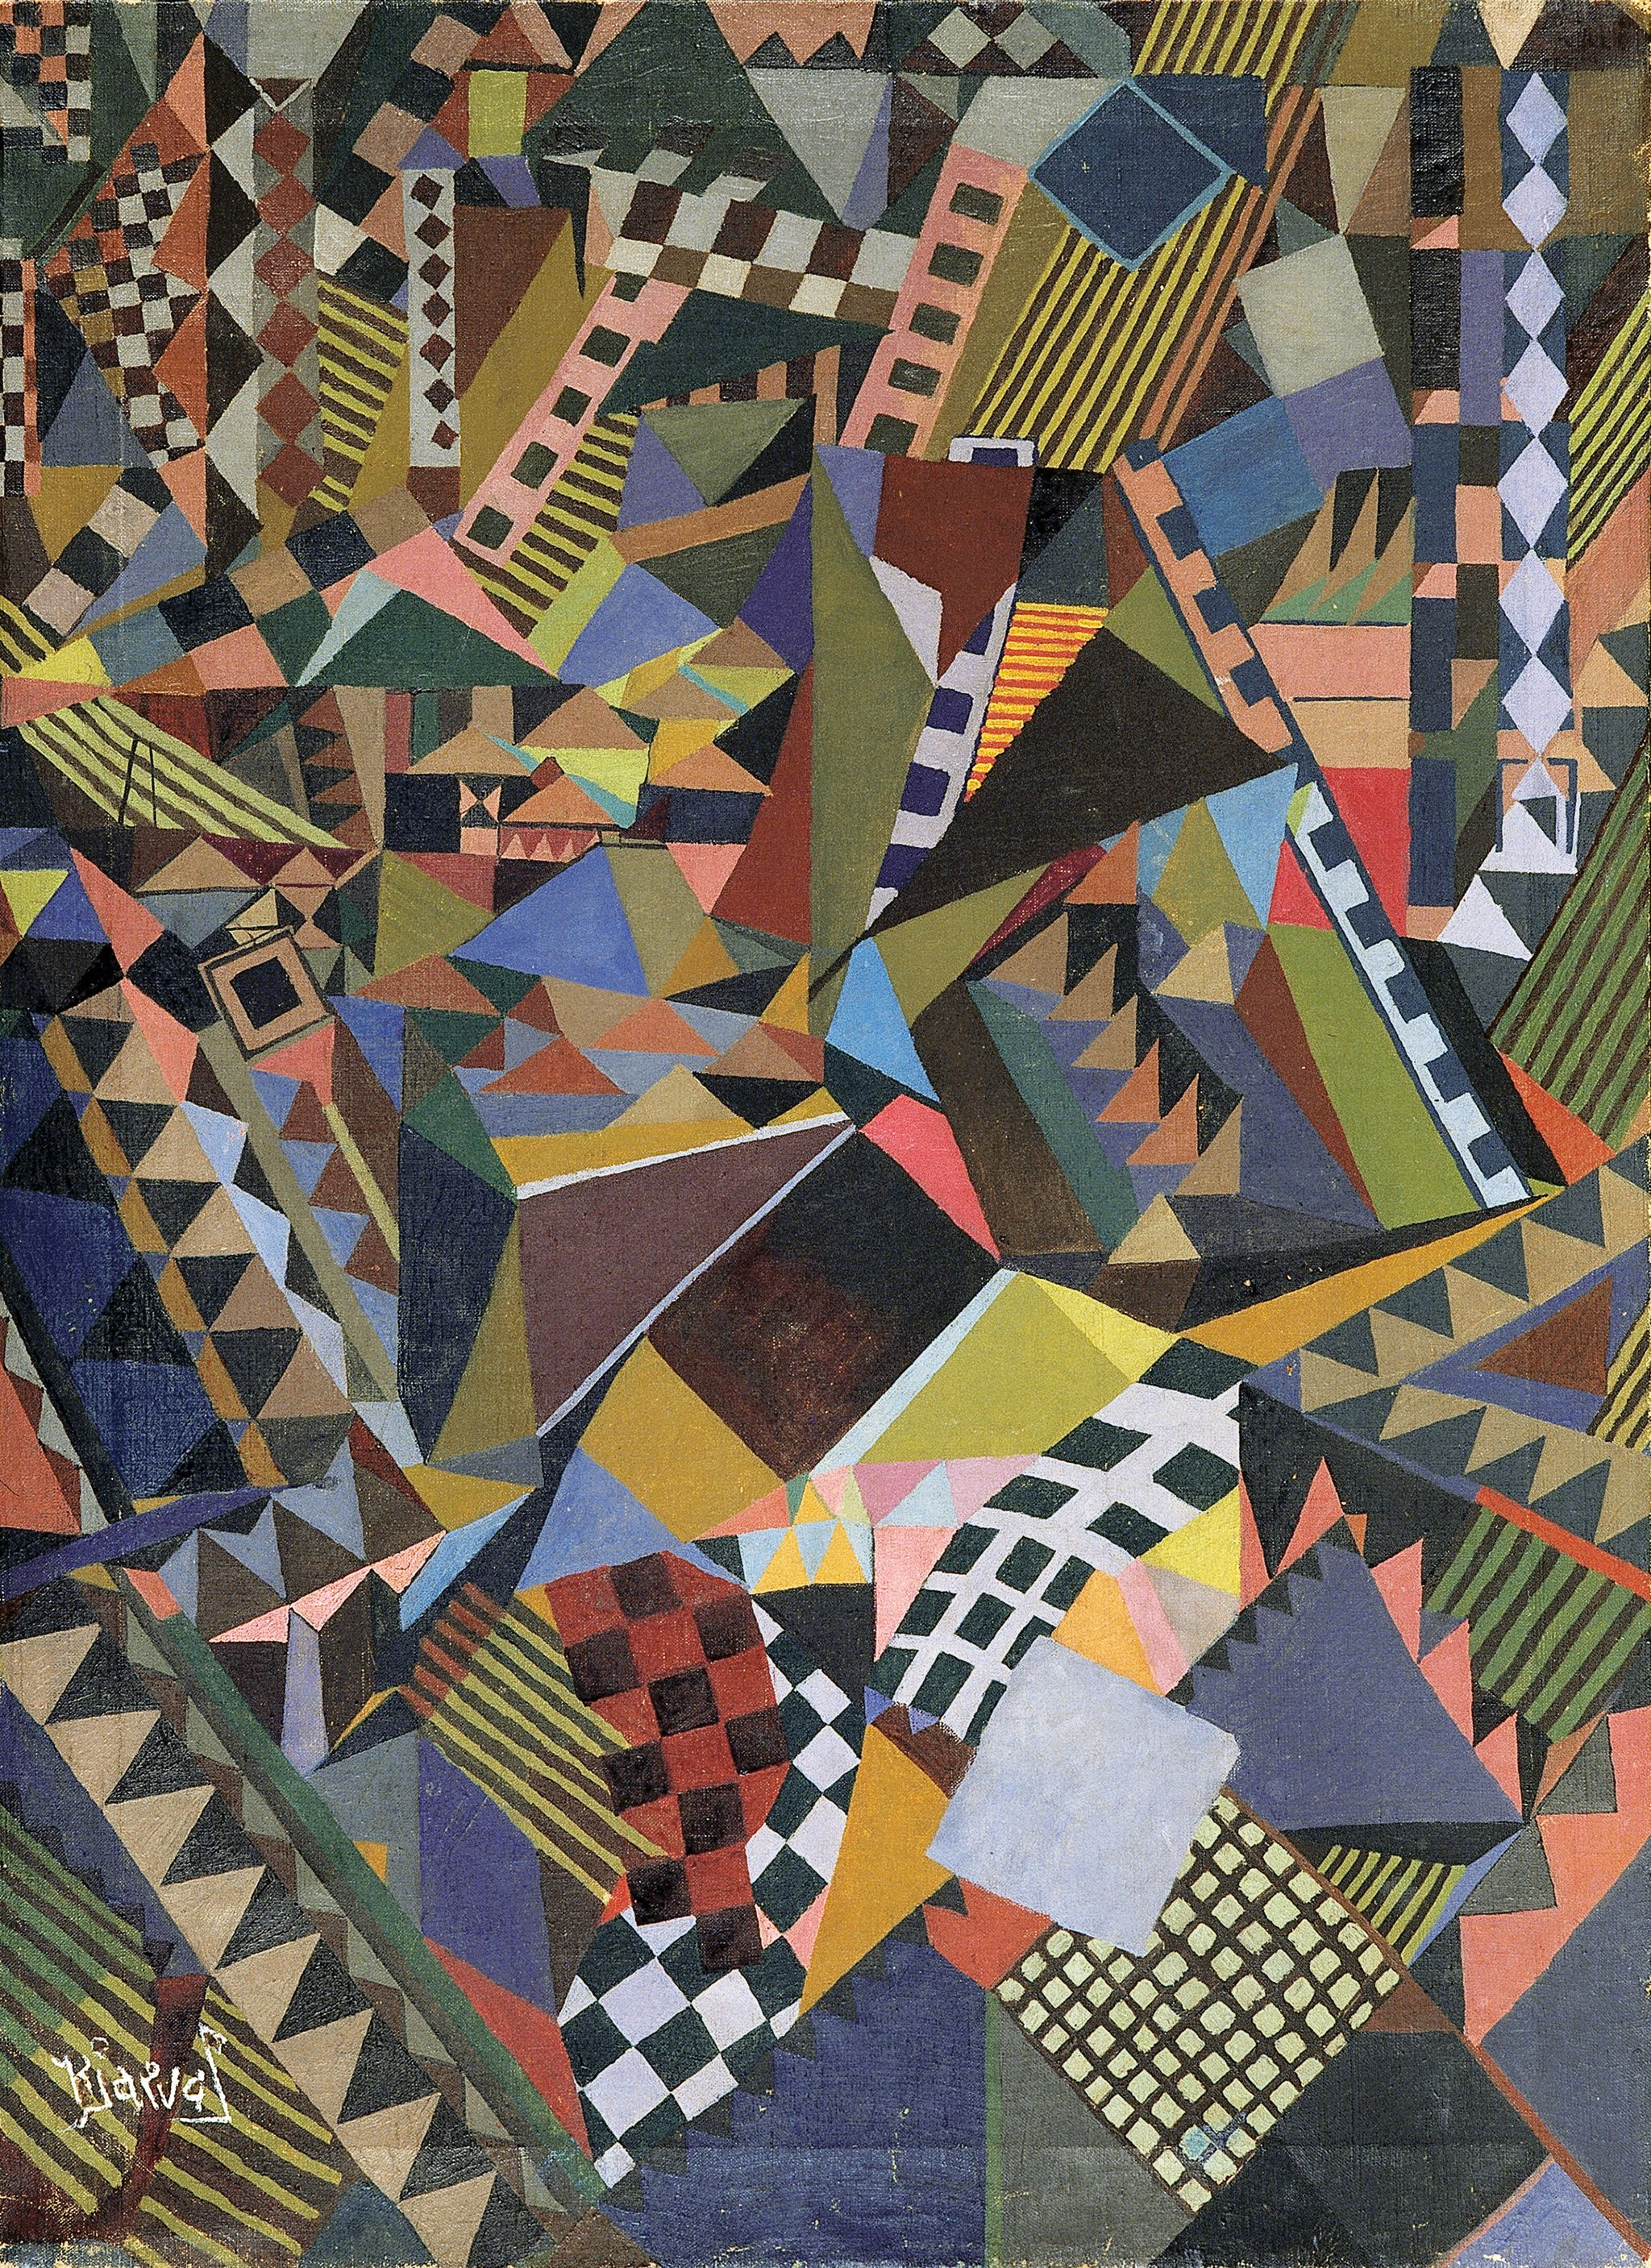 Kjarval, Picture, 1929, oil on canvas.